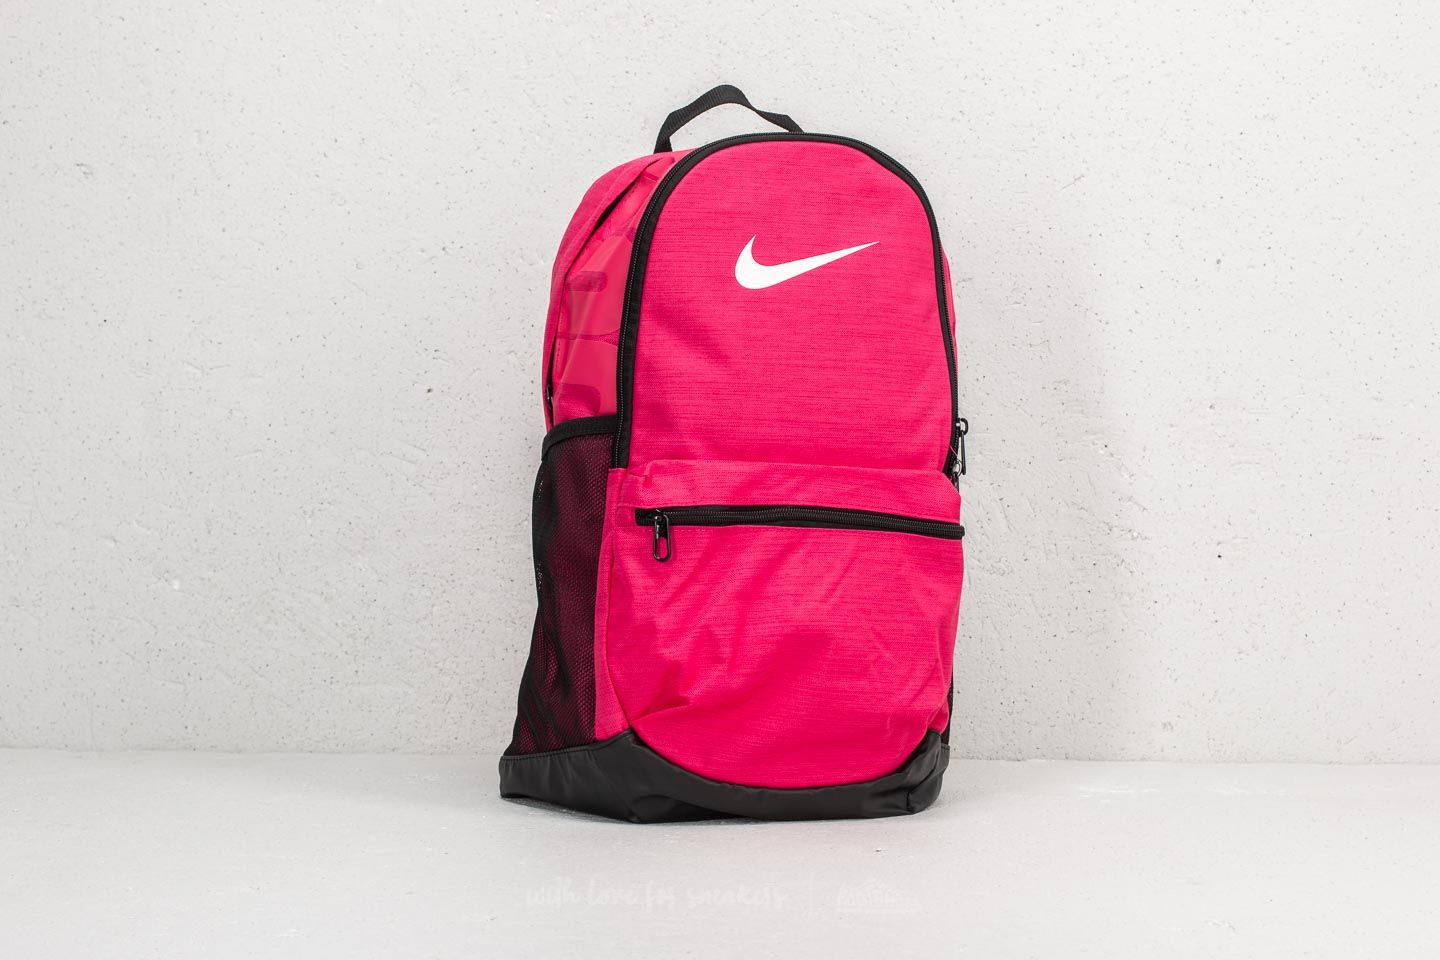 3b88286f4cb9 Nike Brasilia M Backpack Pink  Black  White at a great price 35 € buy